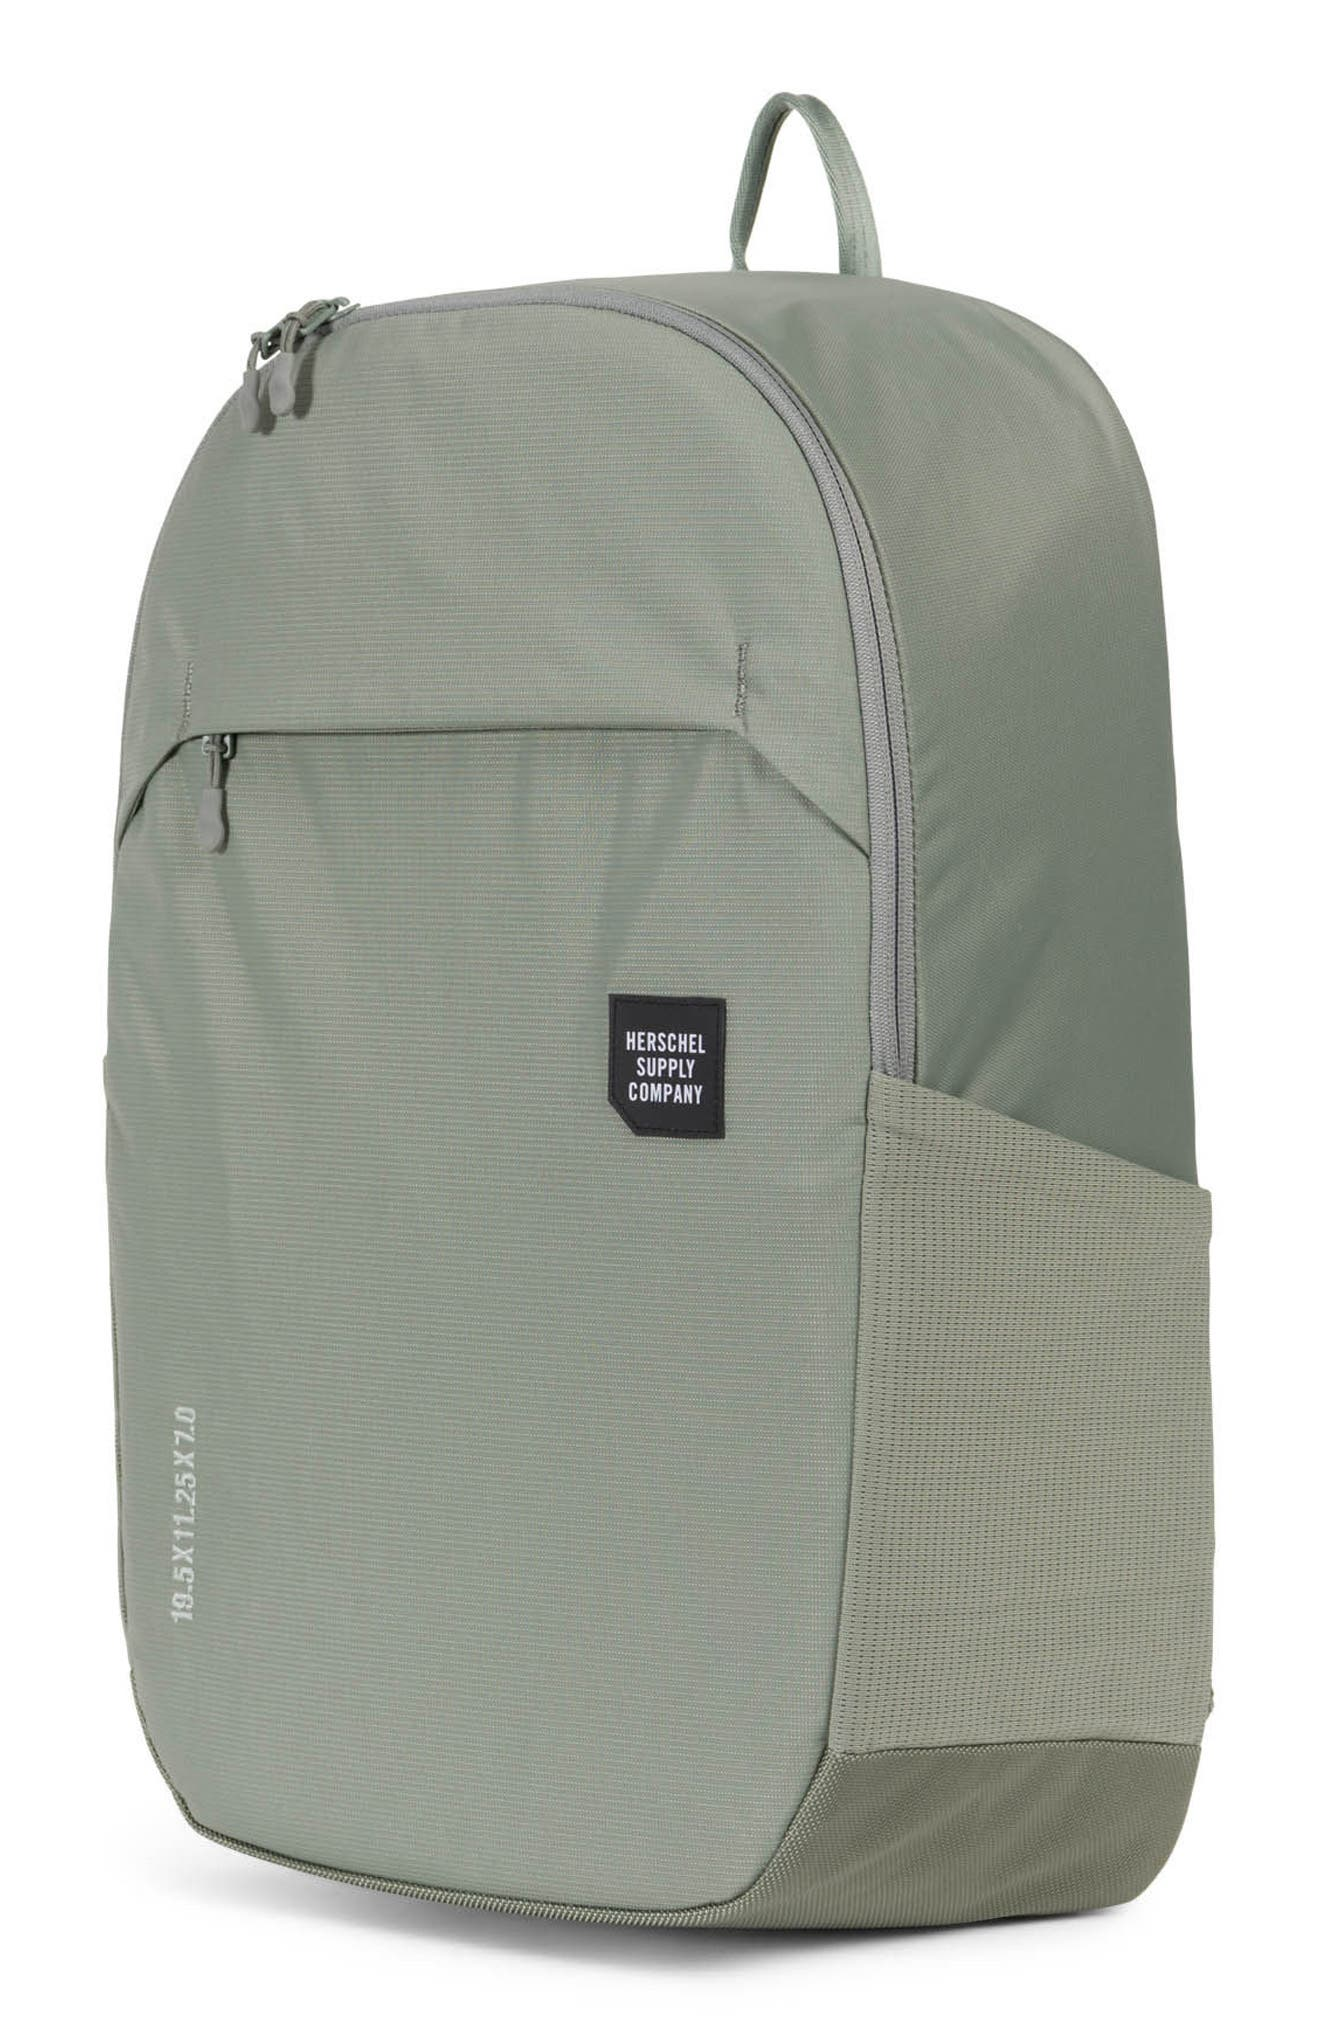 Mammoth Trail Backpack,                         Main,                         color, 037